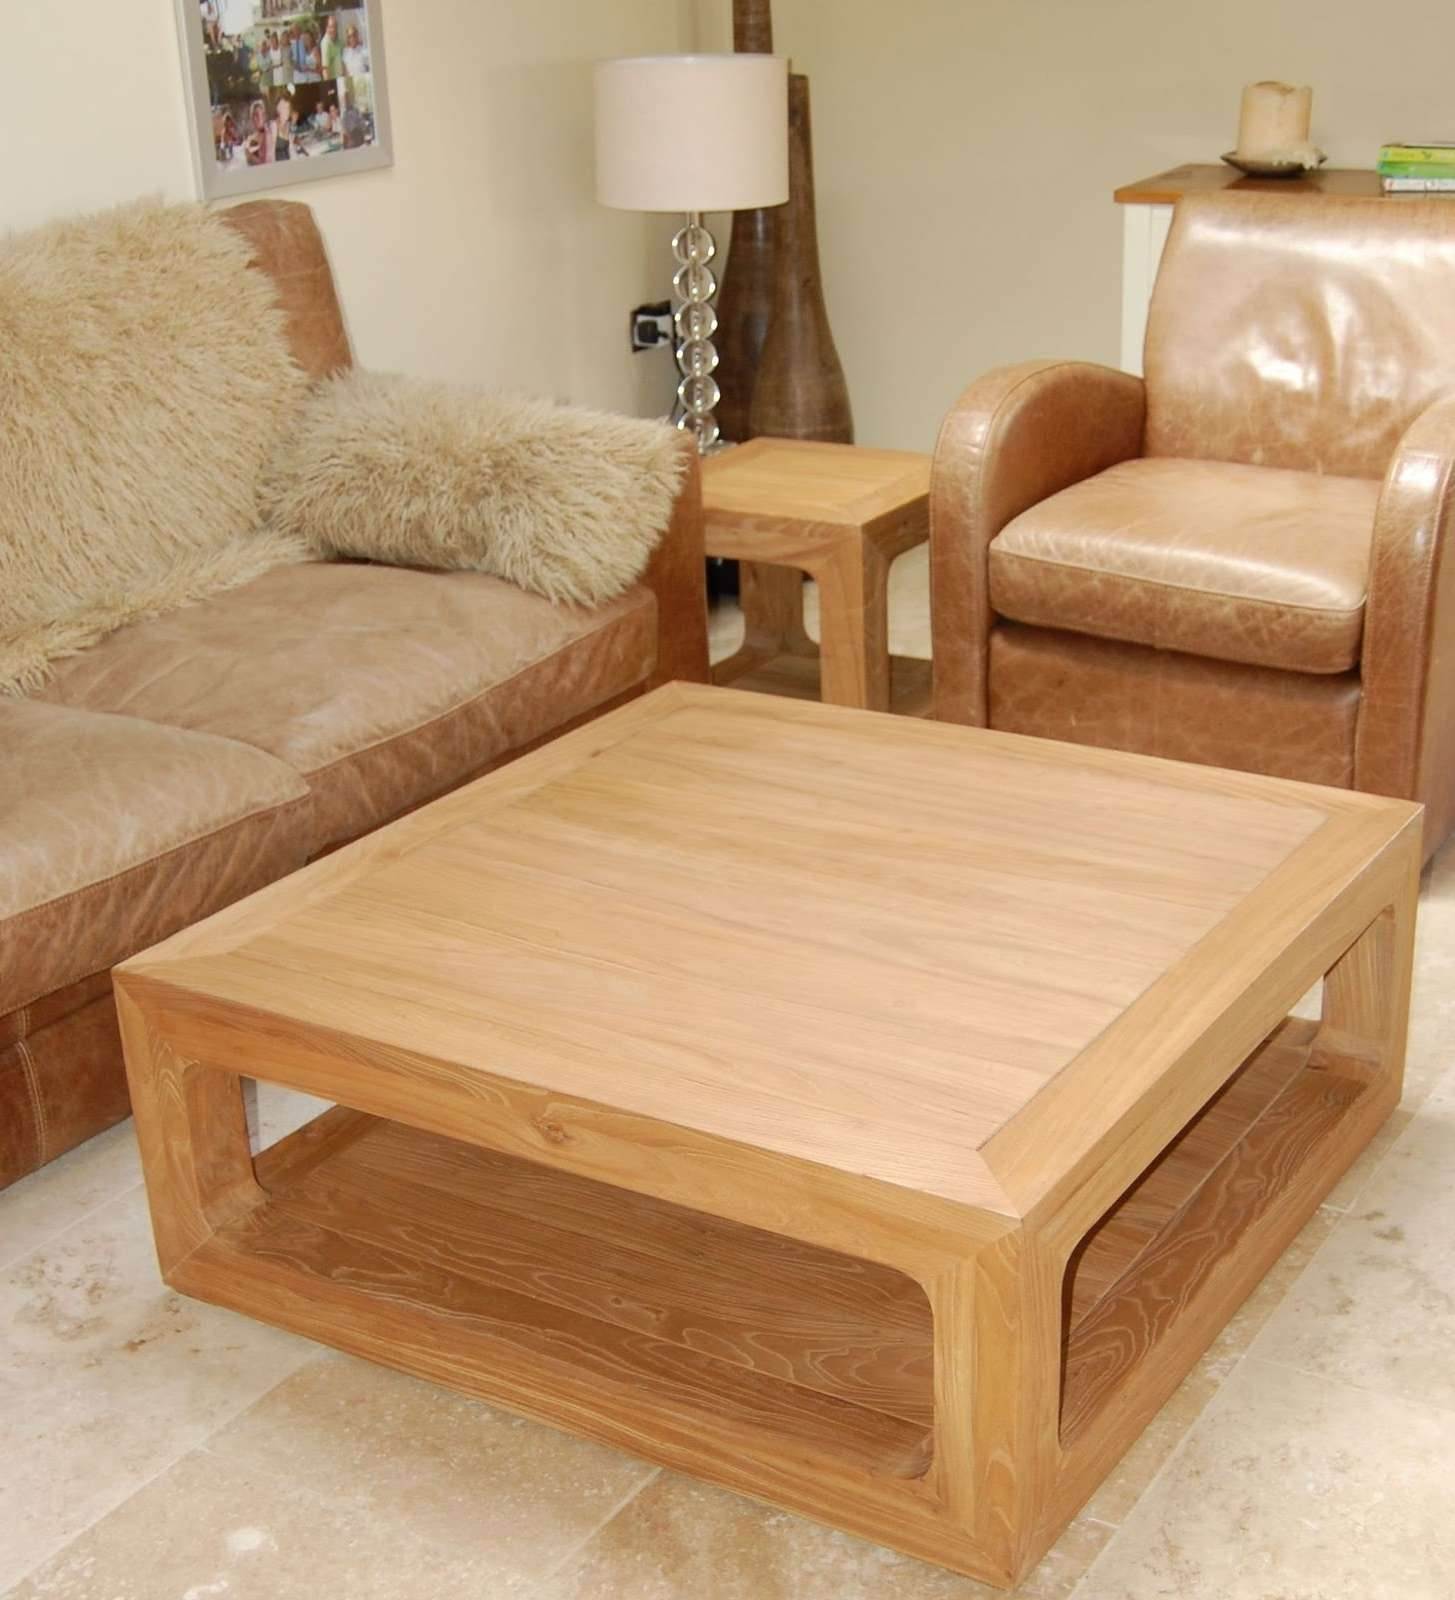 Square Coffee Table Rounded Corners • Table Ideas Within Recent Coffee Tables With Rounded Corners (View 2 of 20)